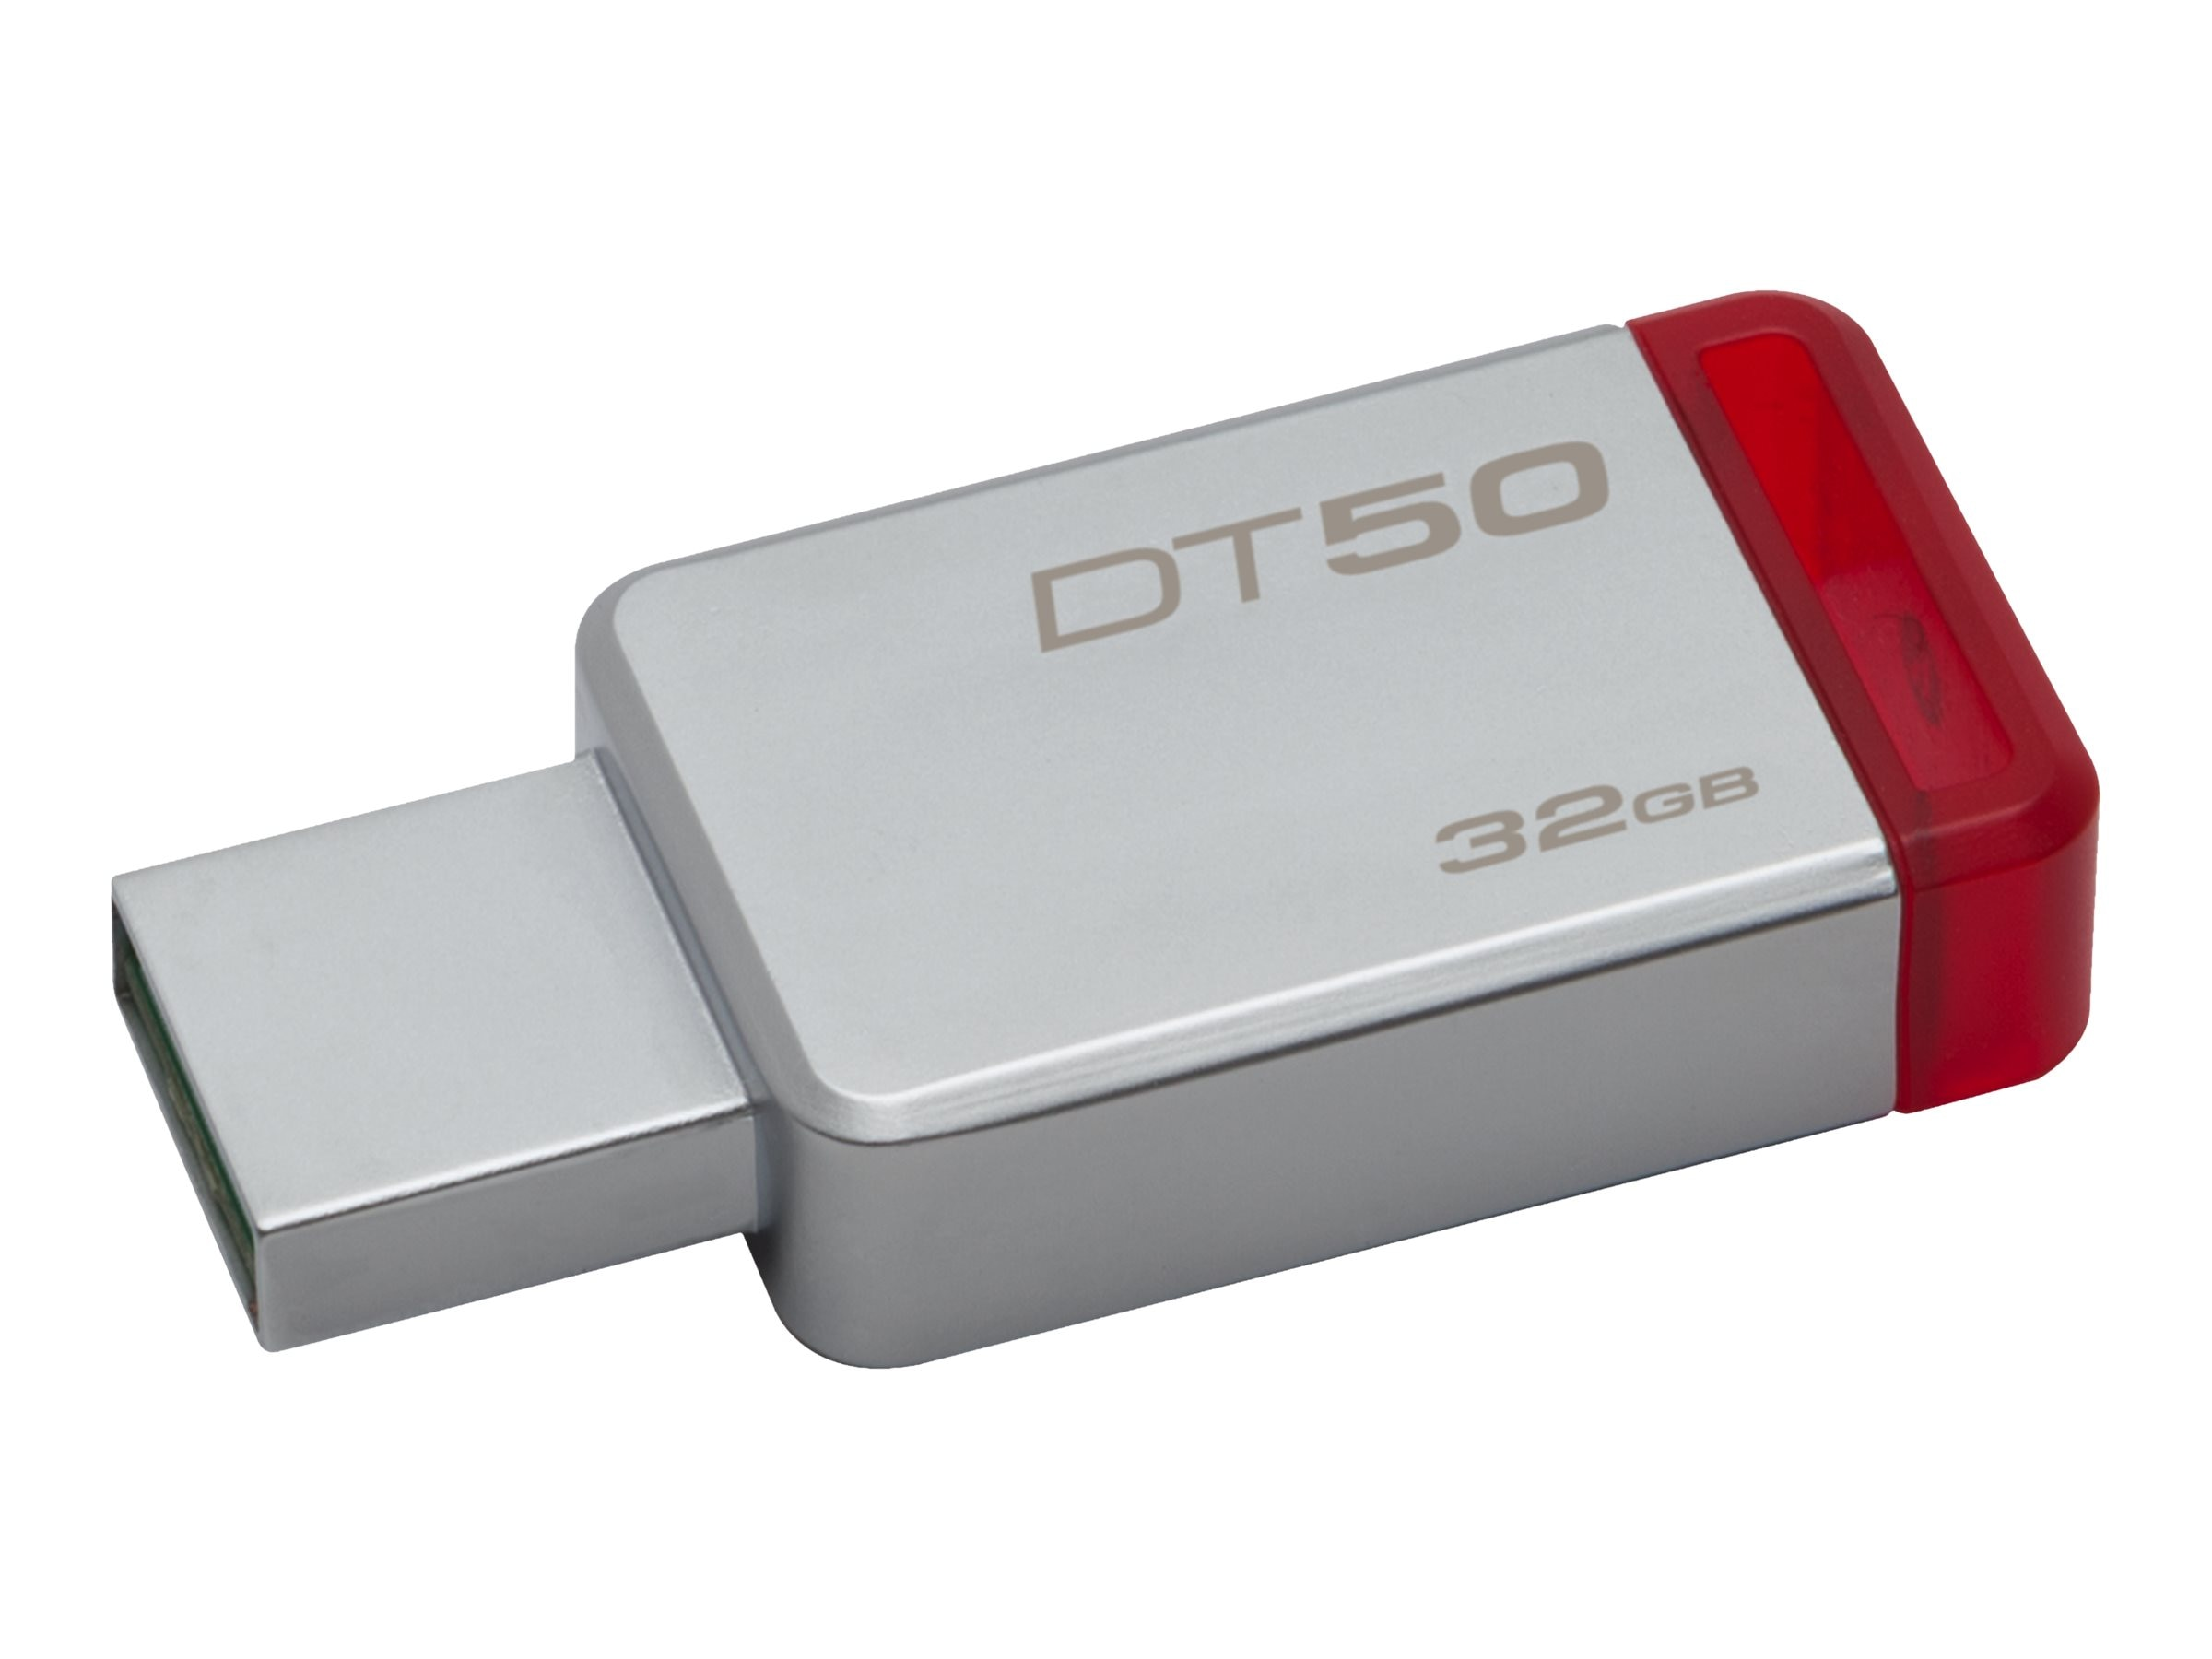 Kingston DT50/32GB Image 1